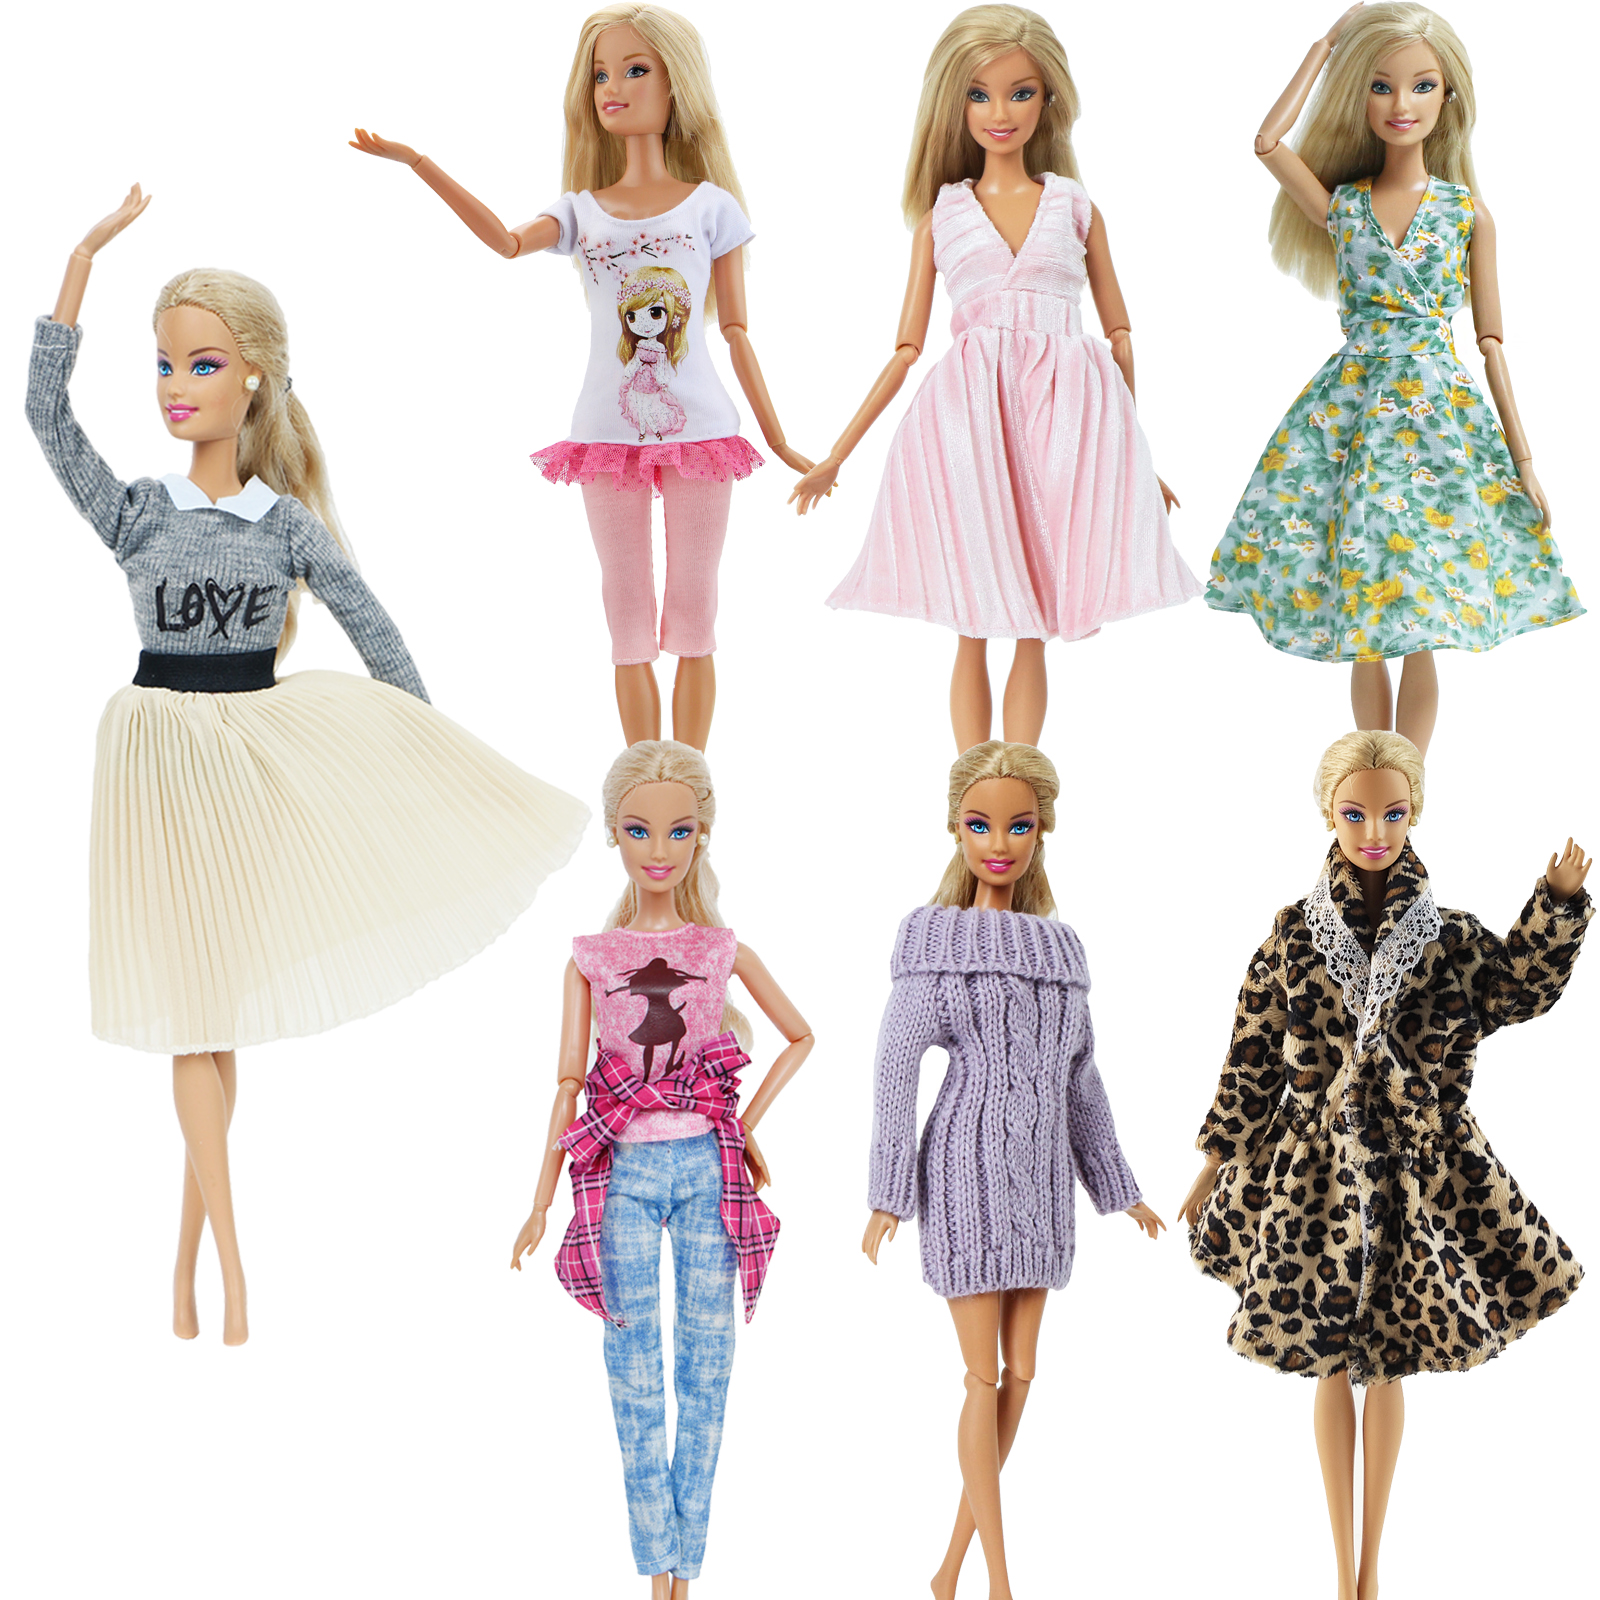 1 PCS Handmade Fashion Outfit Short Dress Cartoon Cute Pattern T shirt Leggings Trousers Accessories Clothes for Barbie Doll Toy|clothes for barbie|clothes for barbie dolls|for barbie - title=